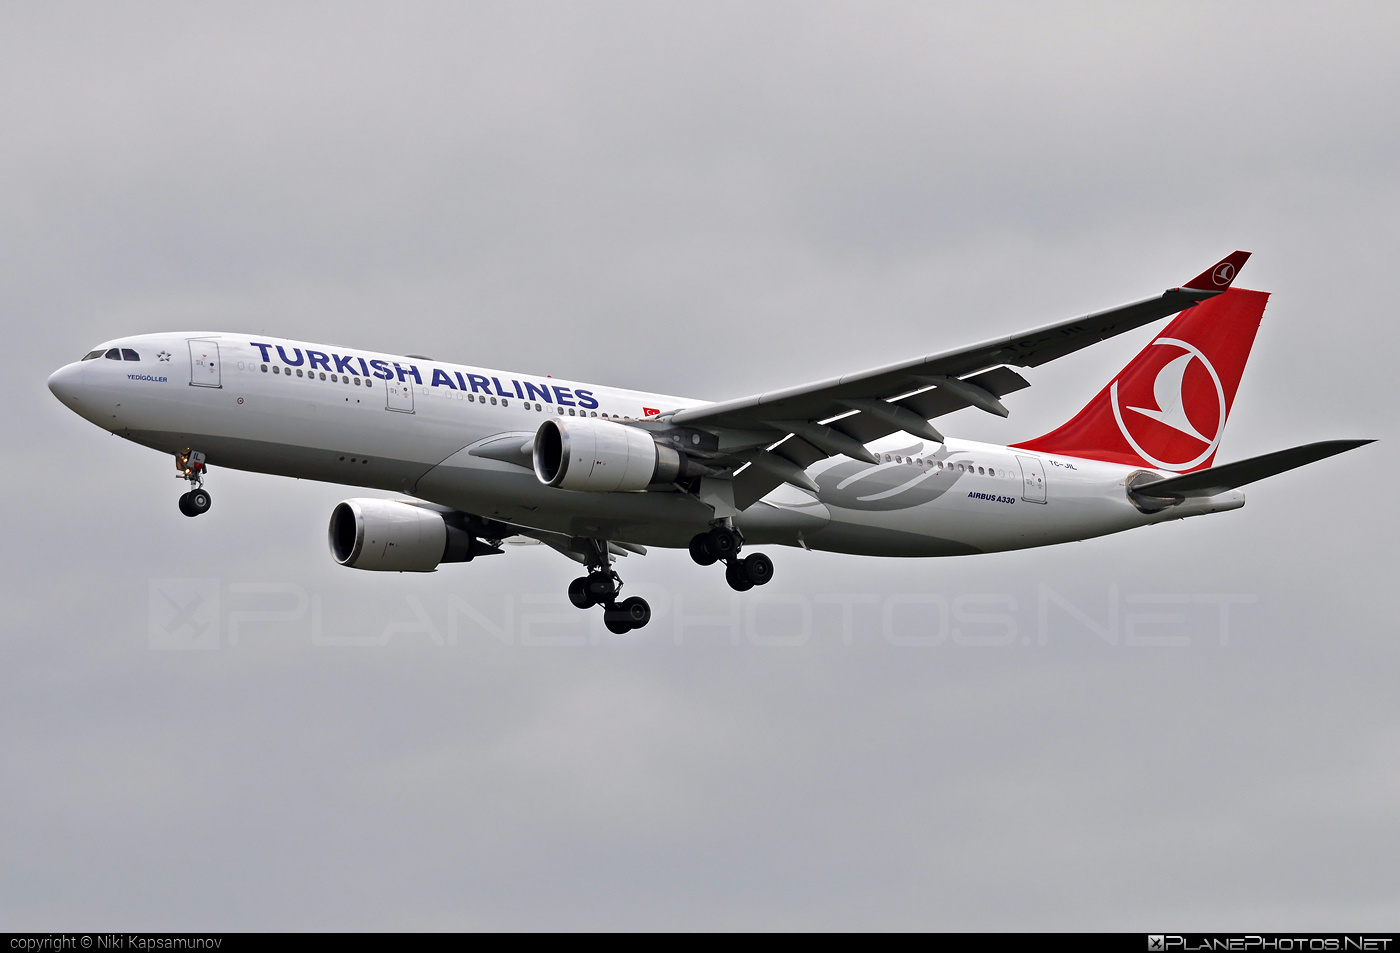 Airbus A330-202 - TC-JIL operated by Turkish Airlines #a330 #a330family #airbus #airbus330 #turkishairlines